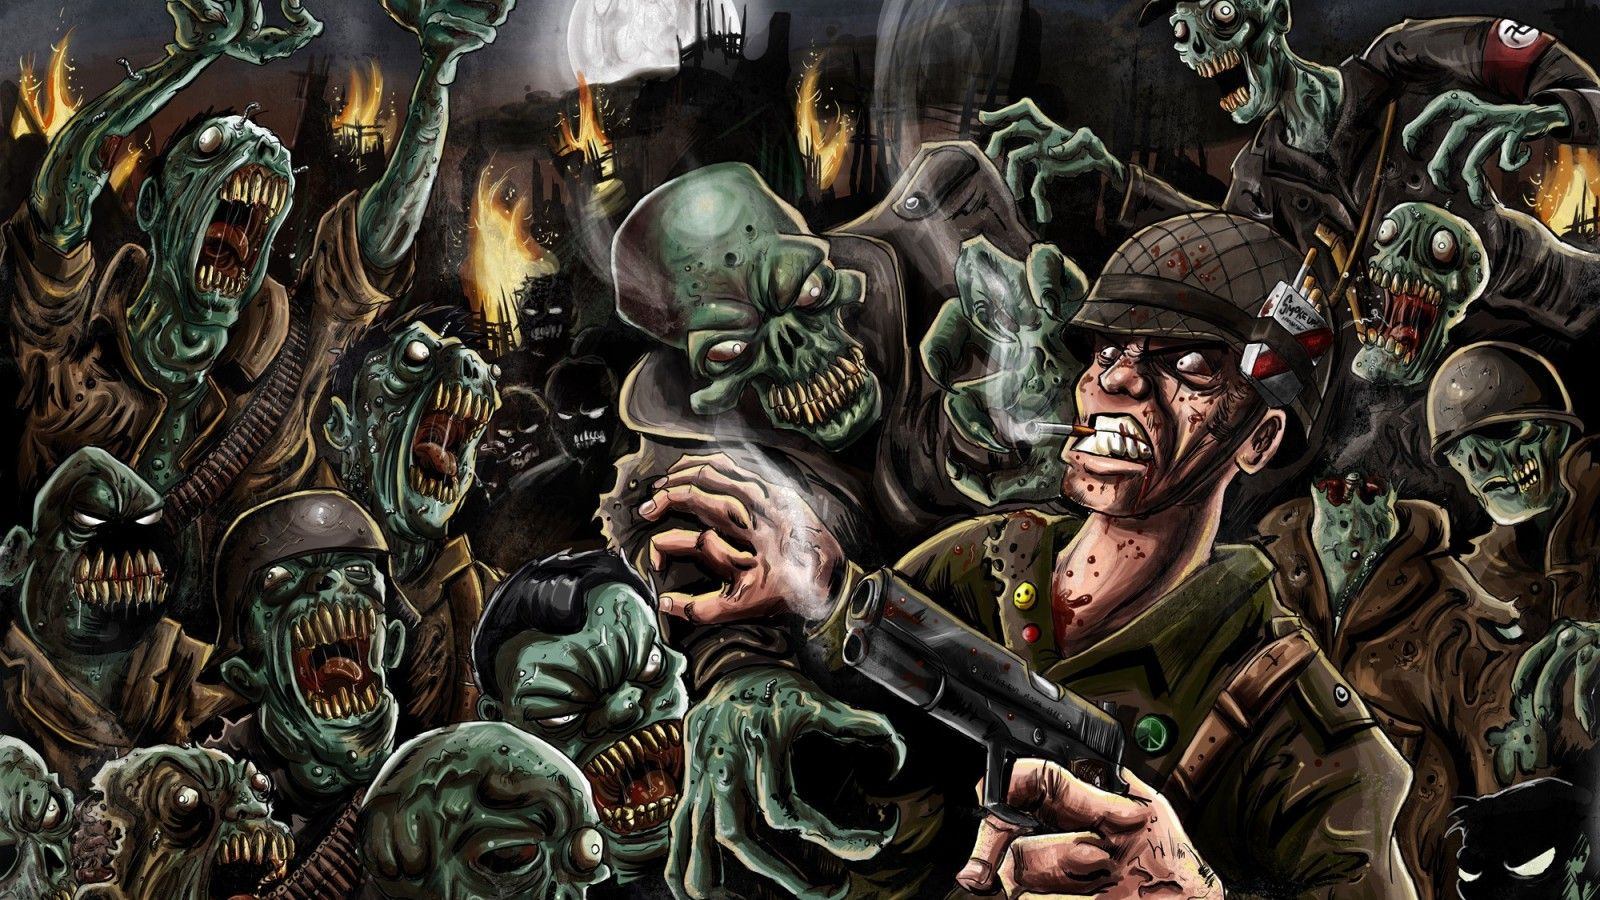 Zombies Wallpapers Pictures Images 1280x800 Wallpaper 53